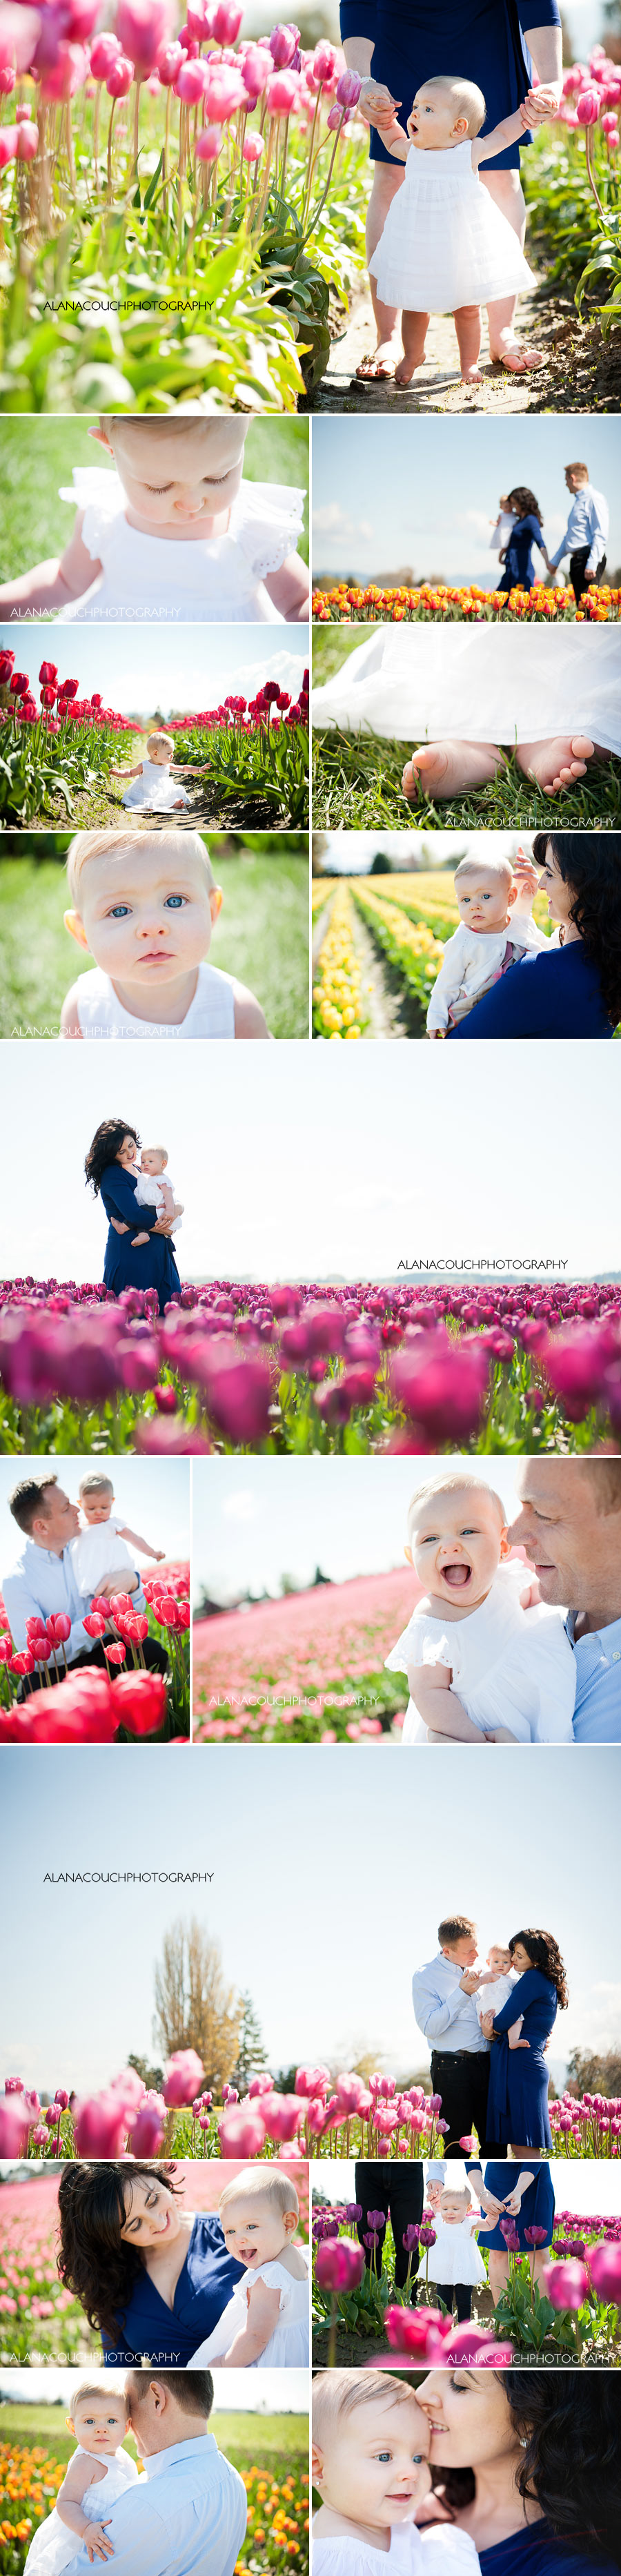 tulip-fields-family-photography-session-skagit